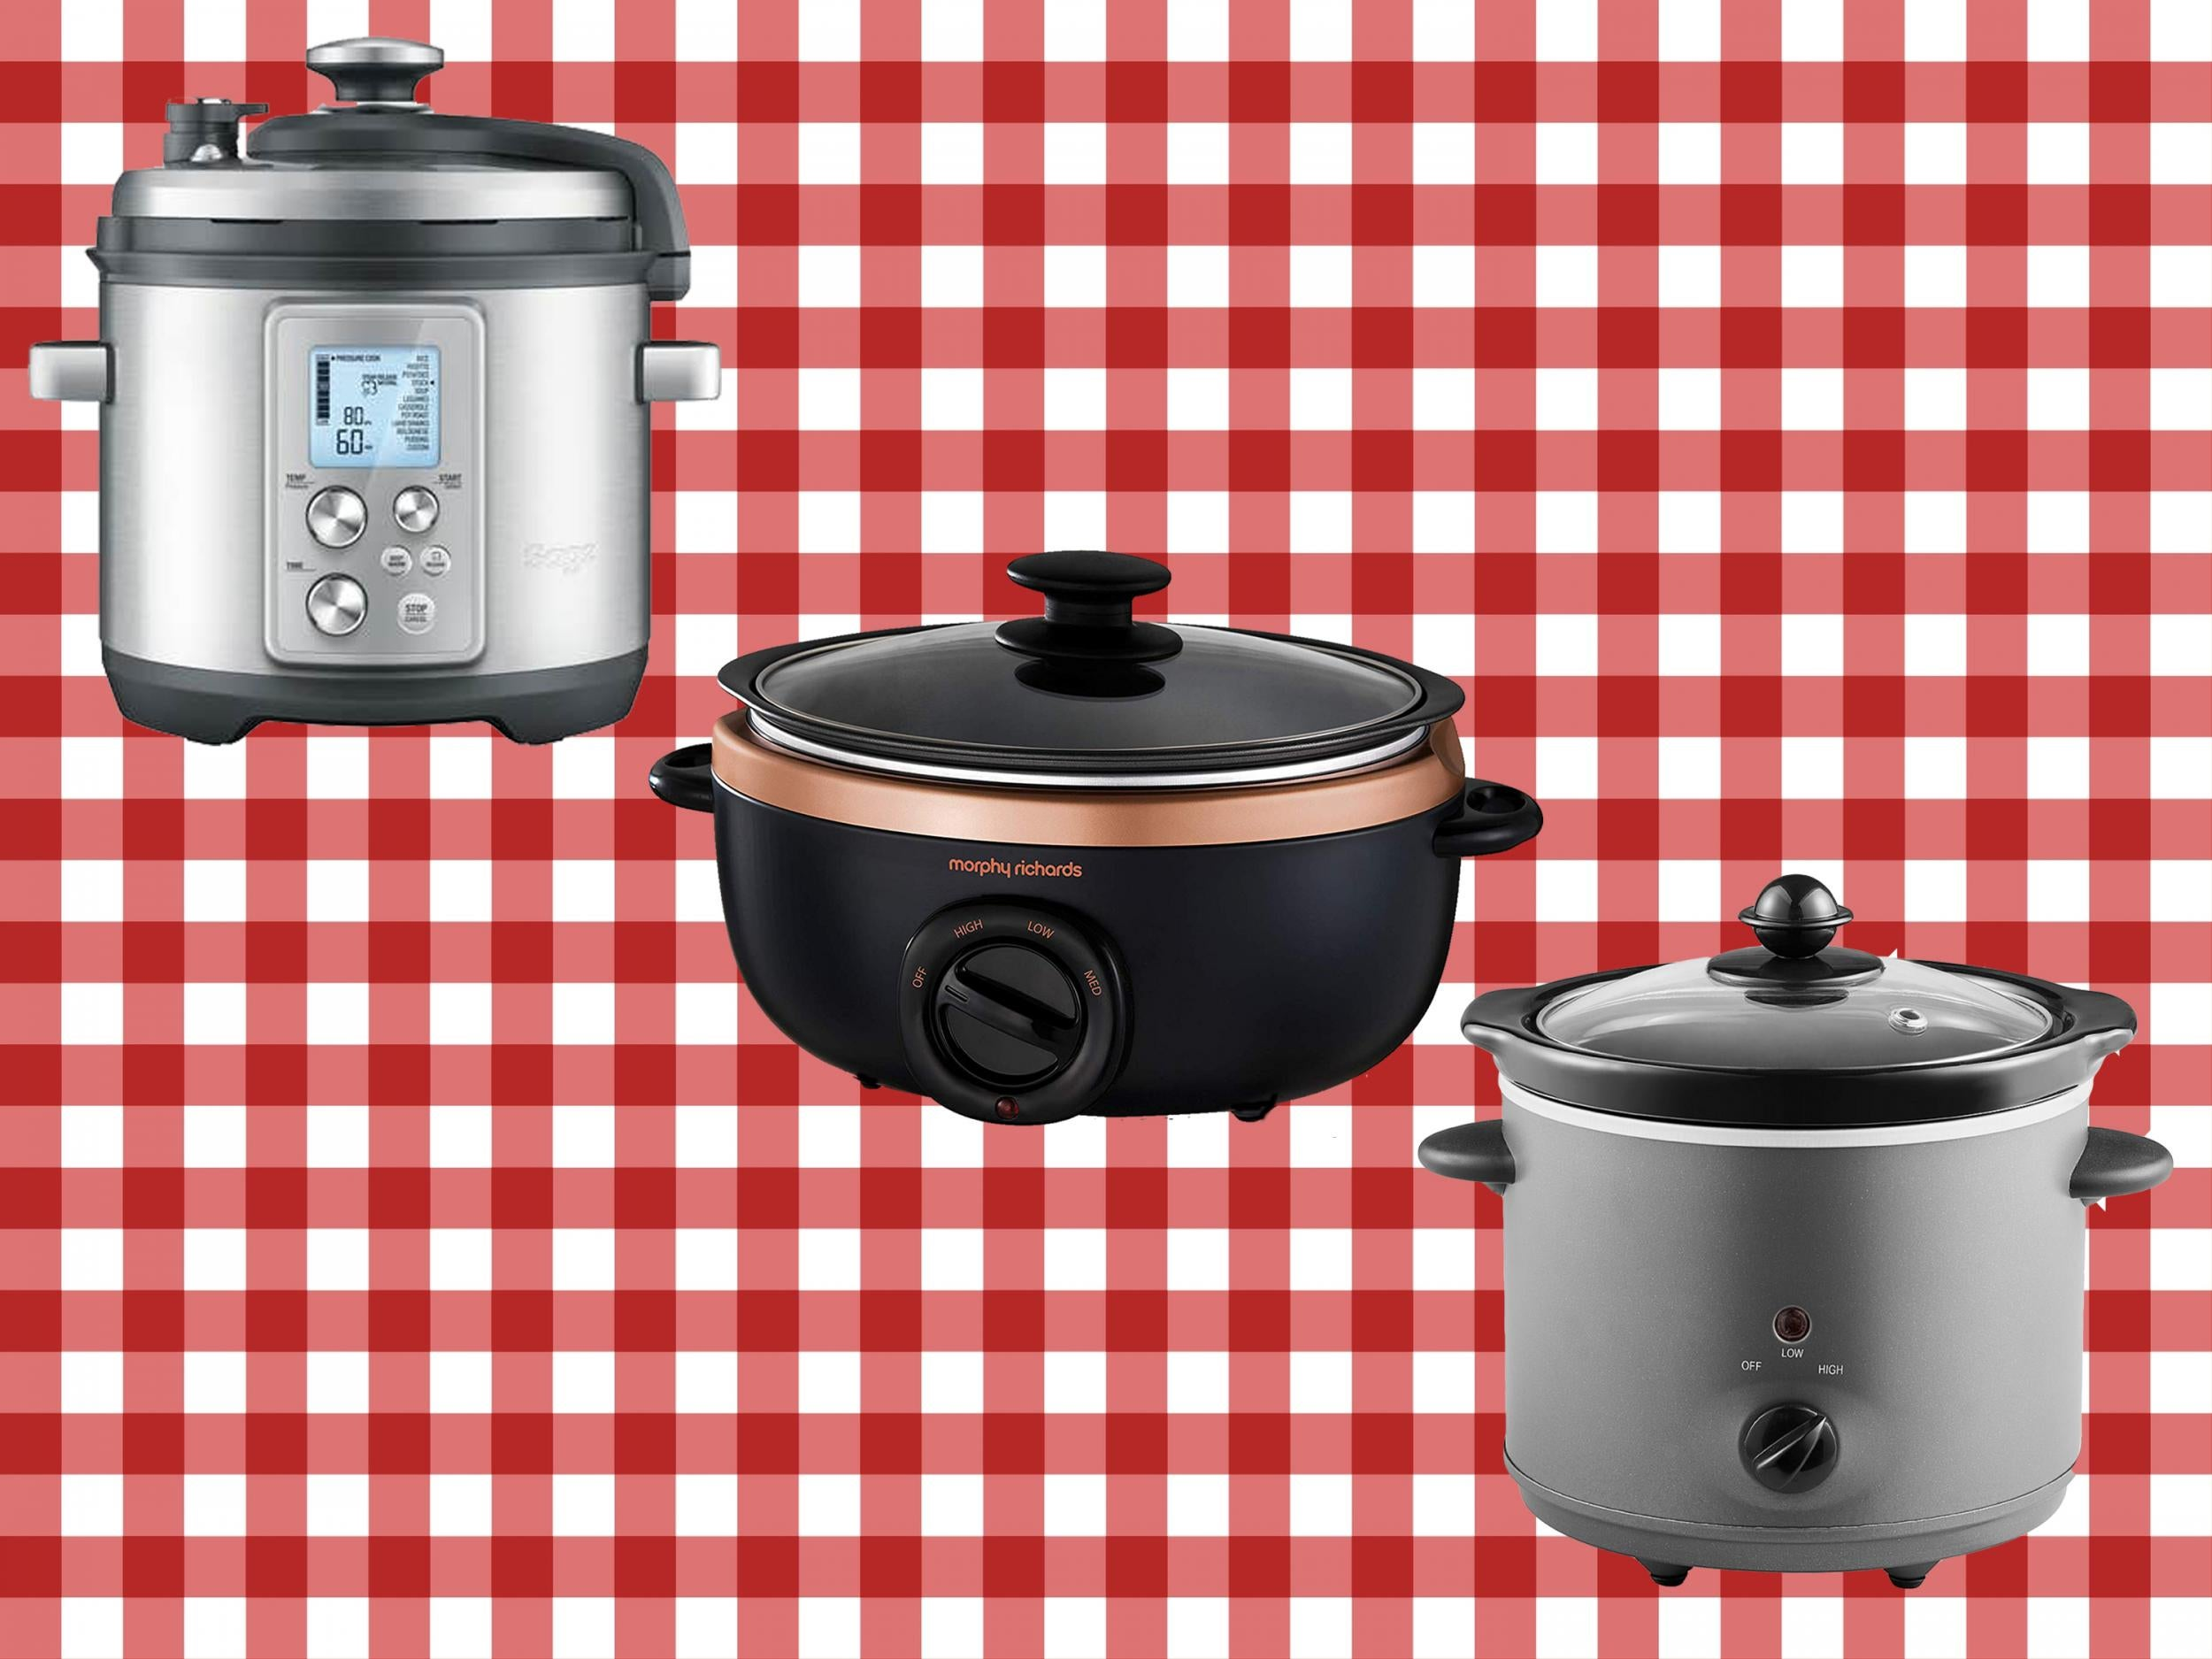 Steam Cooker With 3 Ceramic Stew Rice cooker with glass lid 24-hour Delay Timer Ceramic Stew Pot Electric Cooker Slow Cooker Healthy Cooke